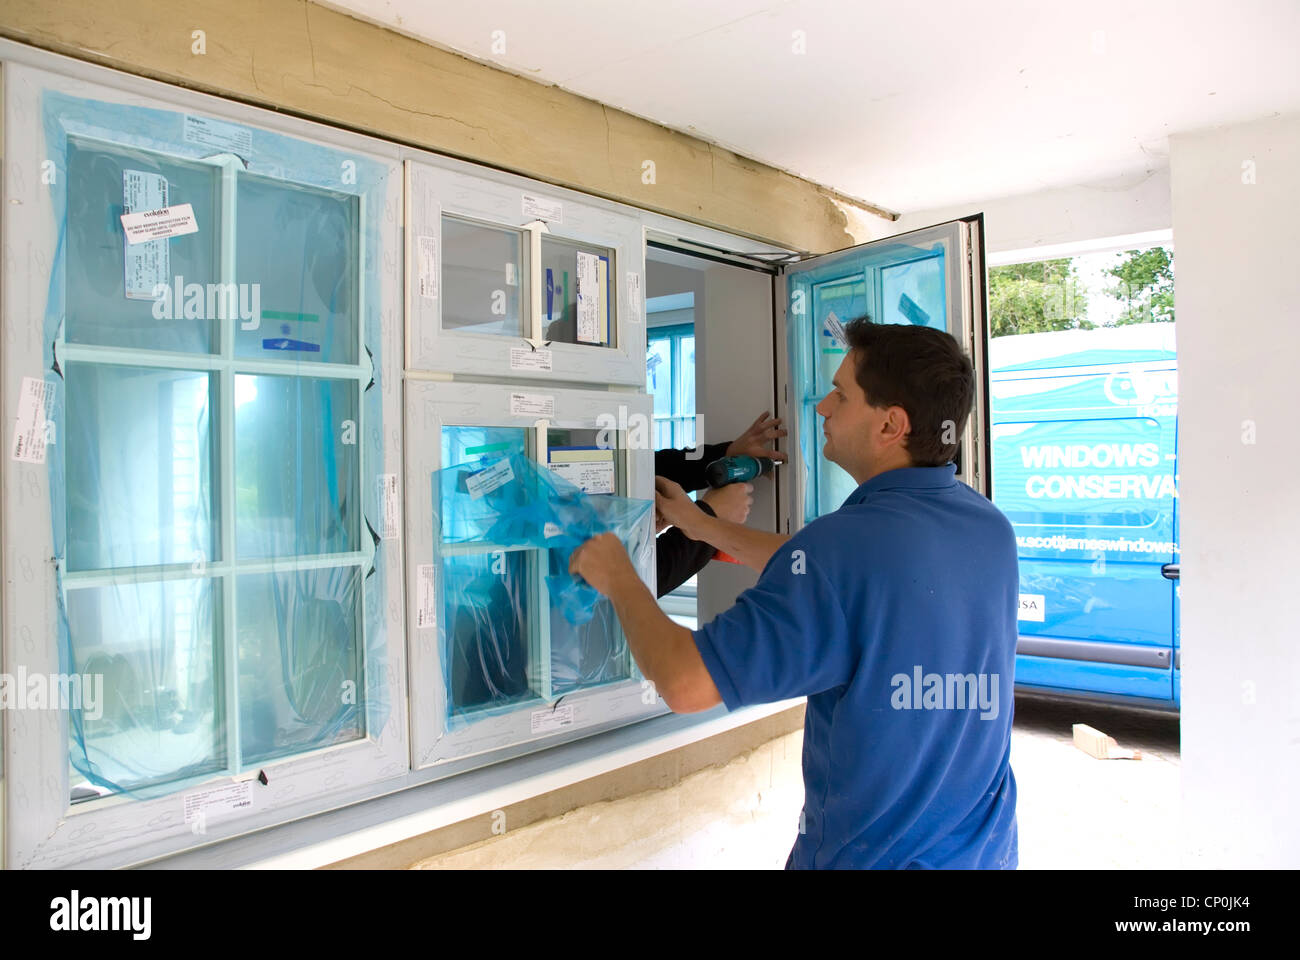 Double Glazed Windows Stockfotos & Double Glazed Windows Bilder - Alamy